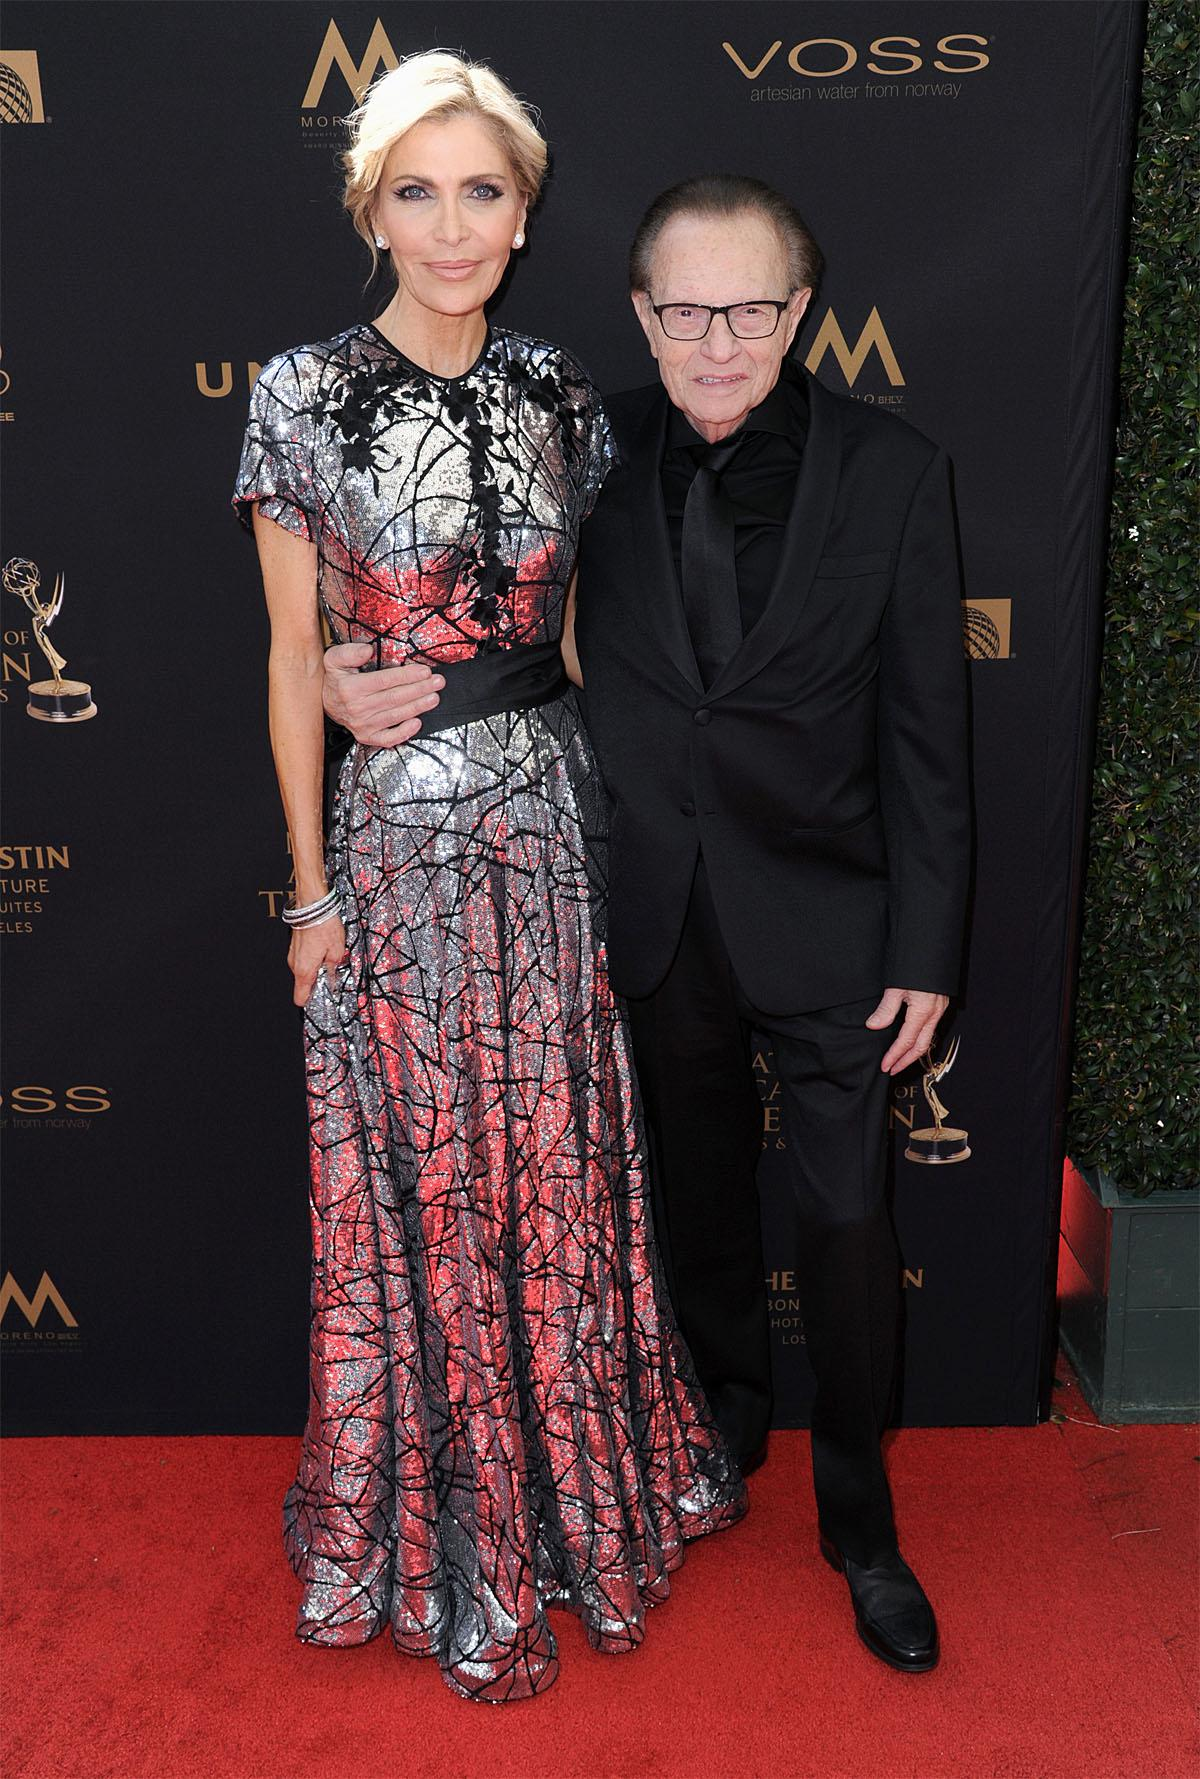 Larry King, right, and Shawn King arrive at the 43rd annual Daytime Emmy Awards at the Westin Bonaventure Hotel on Sunday, May 1, 2016, in Los Angeles. (Photo by Richard Shotwell/Invision/AP)